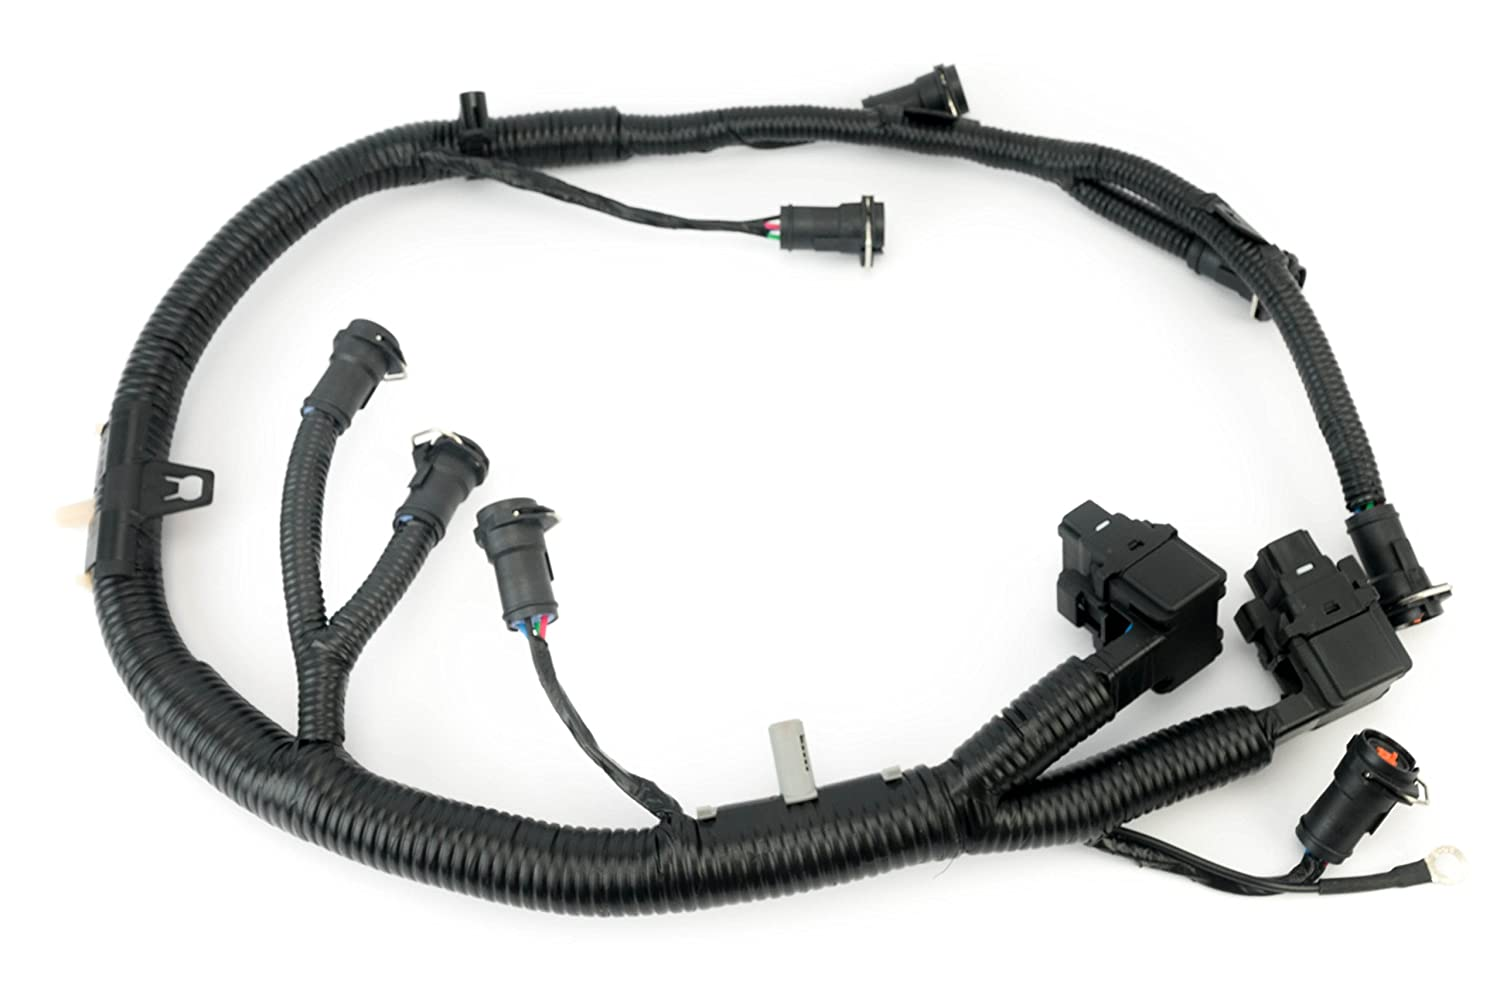 For F350 Injector Wiring Harness Free Download Library Ford Amazoncom Ficm Engine Fuel Complete Wire Replaces Part 5c3z9d930a